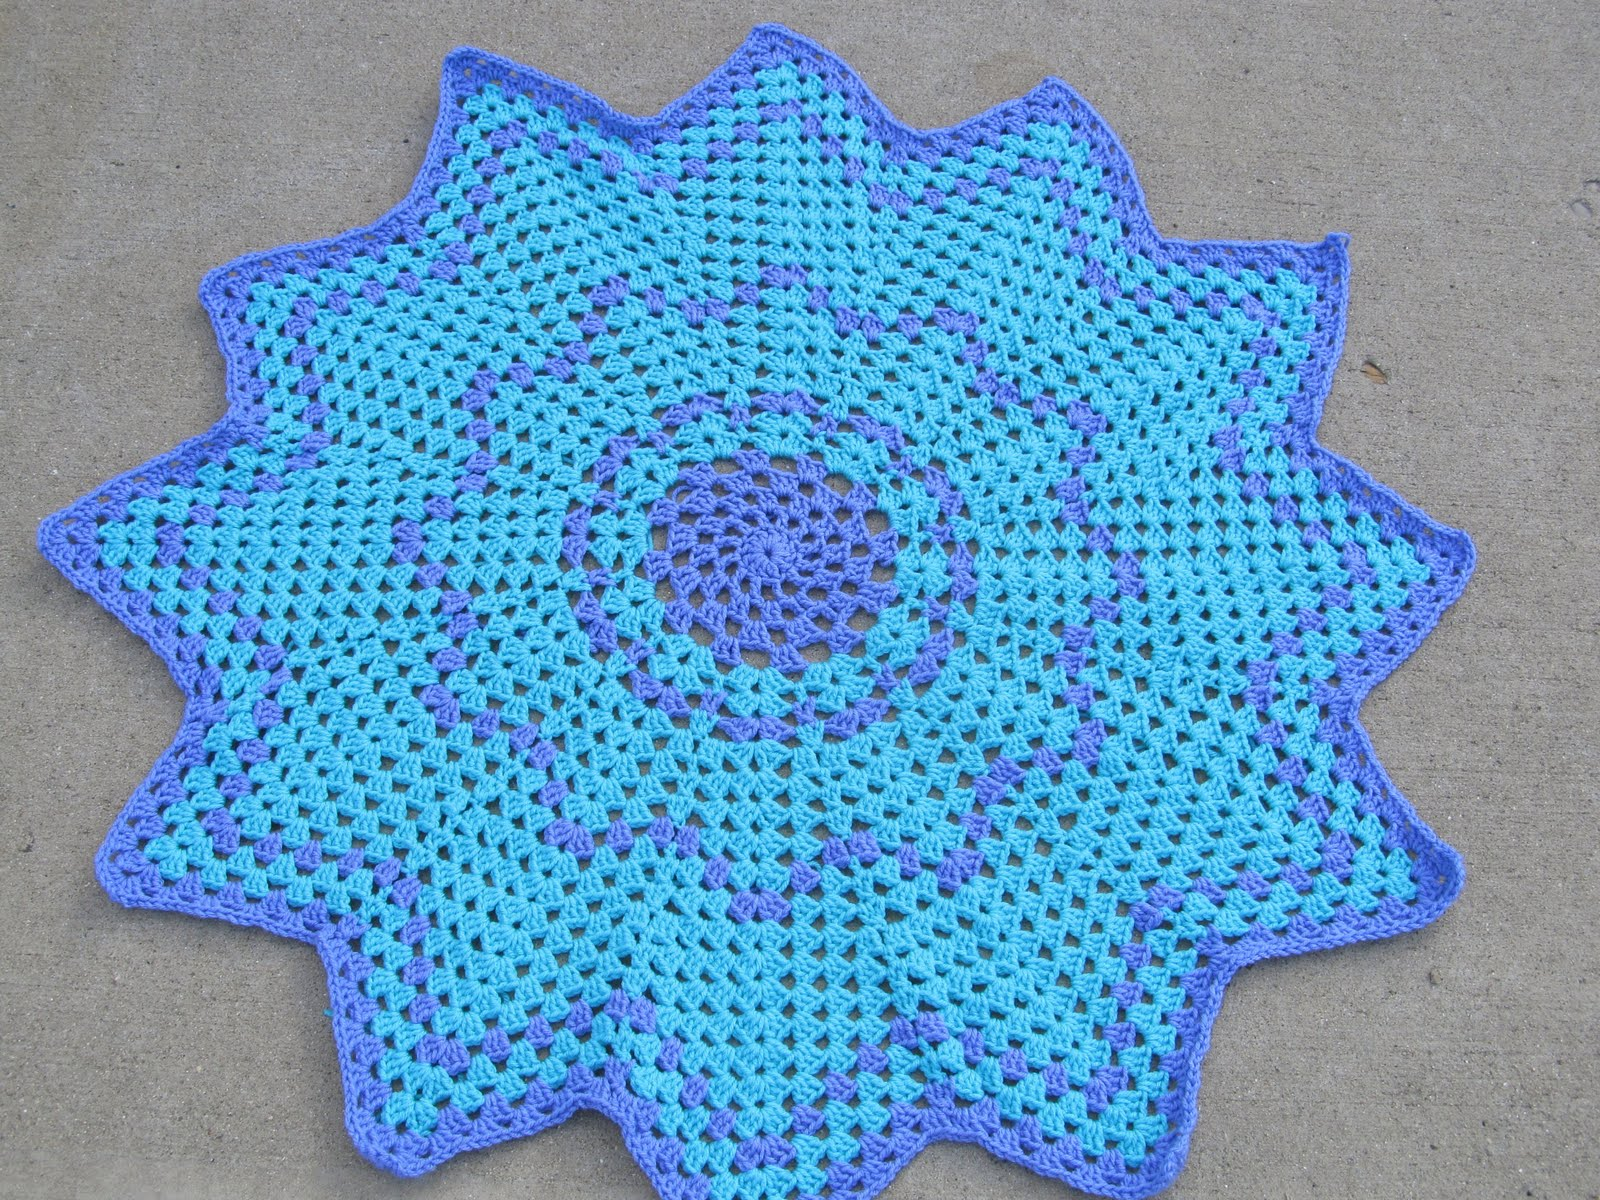 Crochet Pattern Round Ripple Afghan : SmoothFox Crochet and Knit: SmoothFoxs Granny Round ...